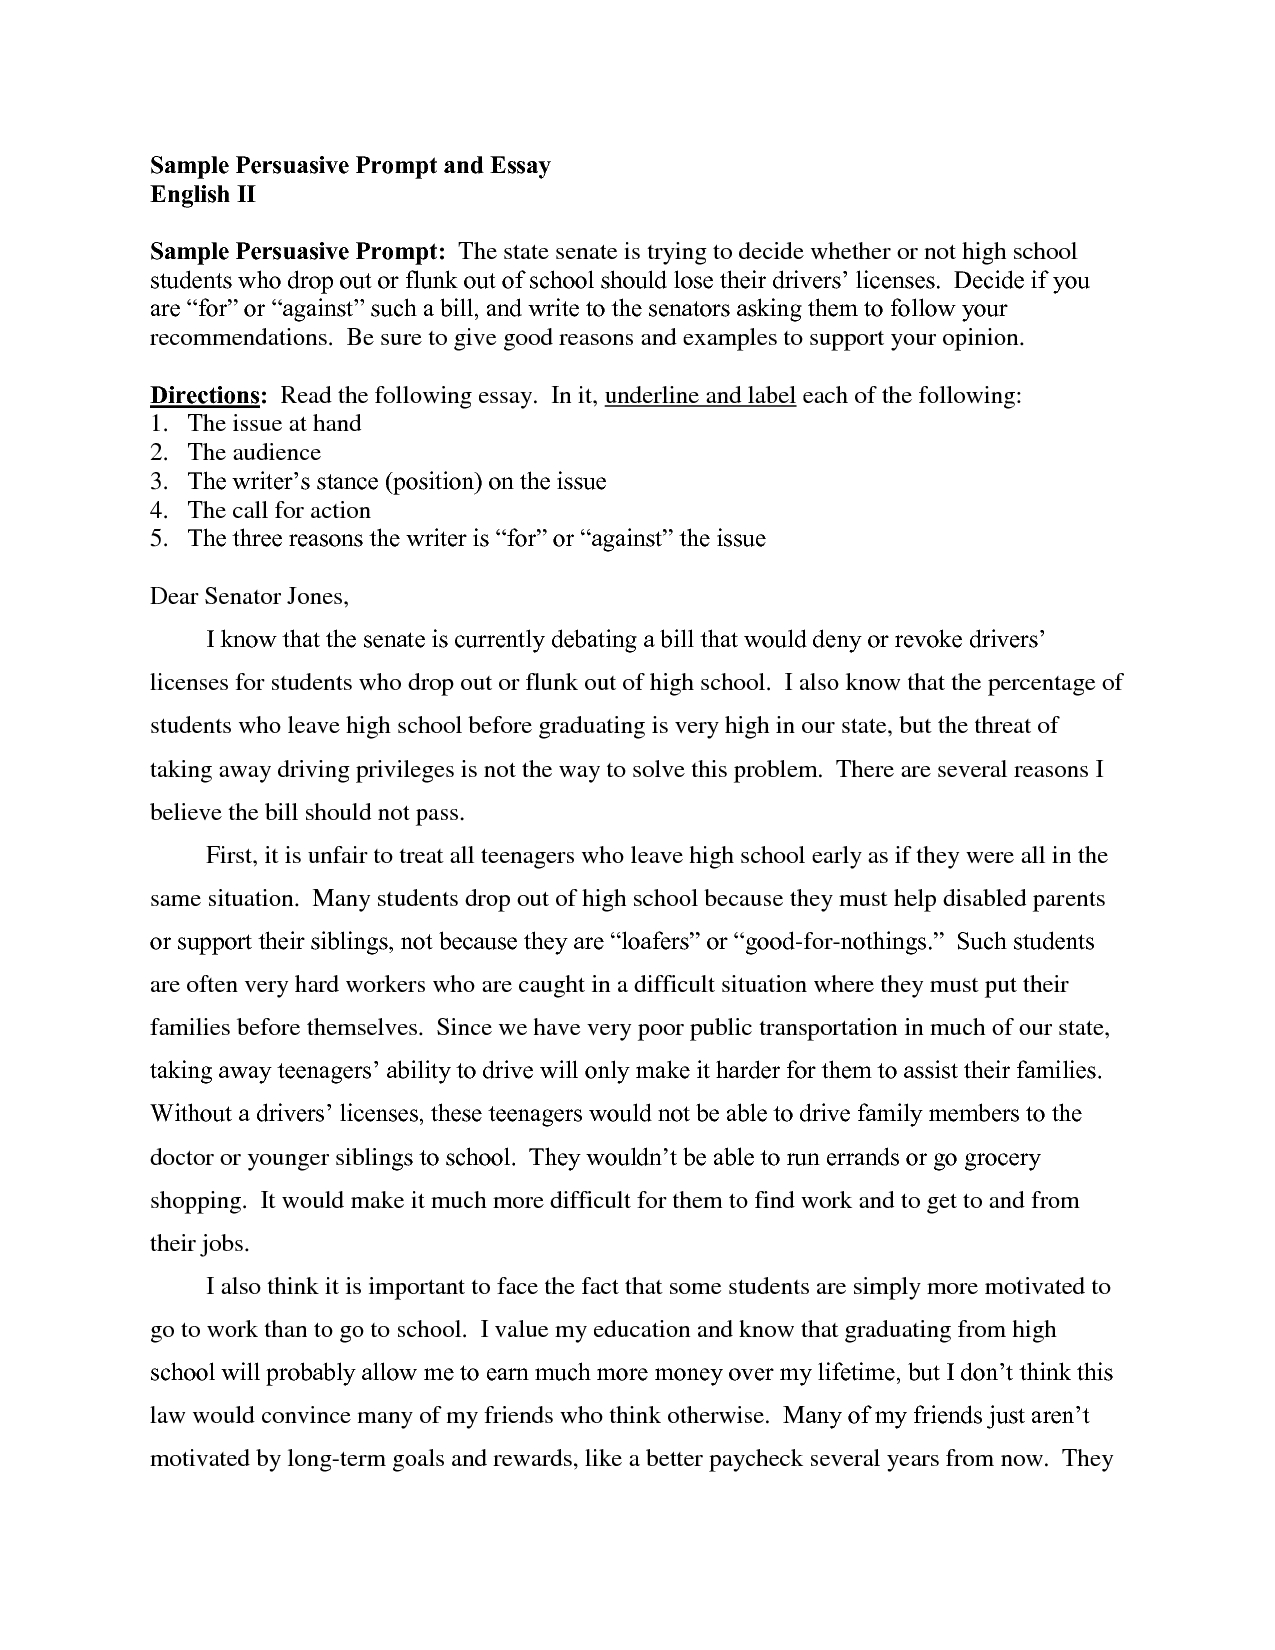 Essay On Healthy Eating Habits  Essay On Health Promotion also Compare And Contrast Essay On High School And College  Examples Of Research Papers Topics Paper Informative  English Essay My Best Friend